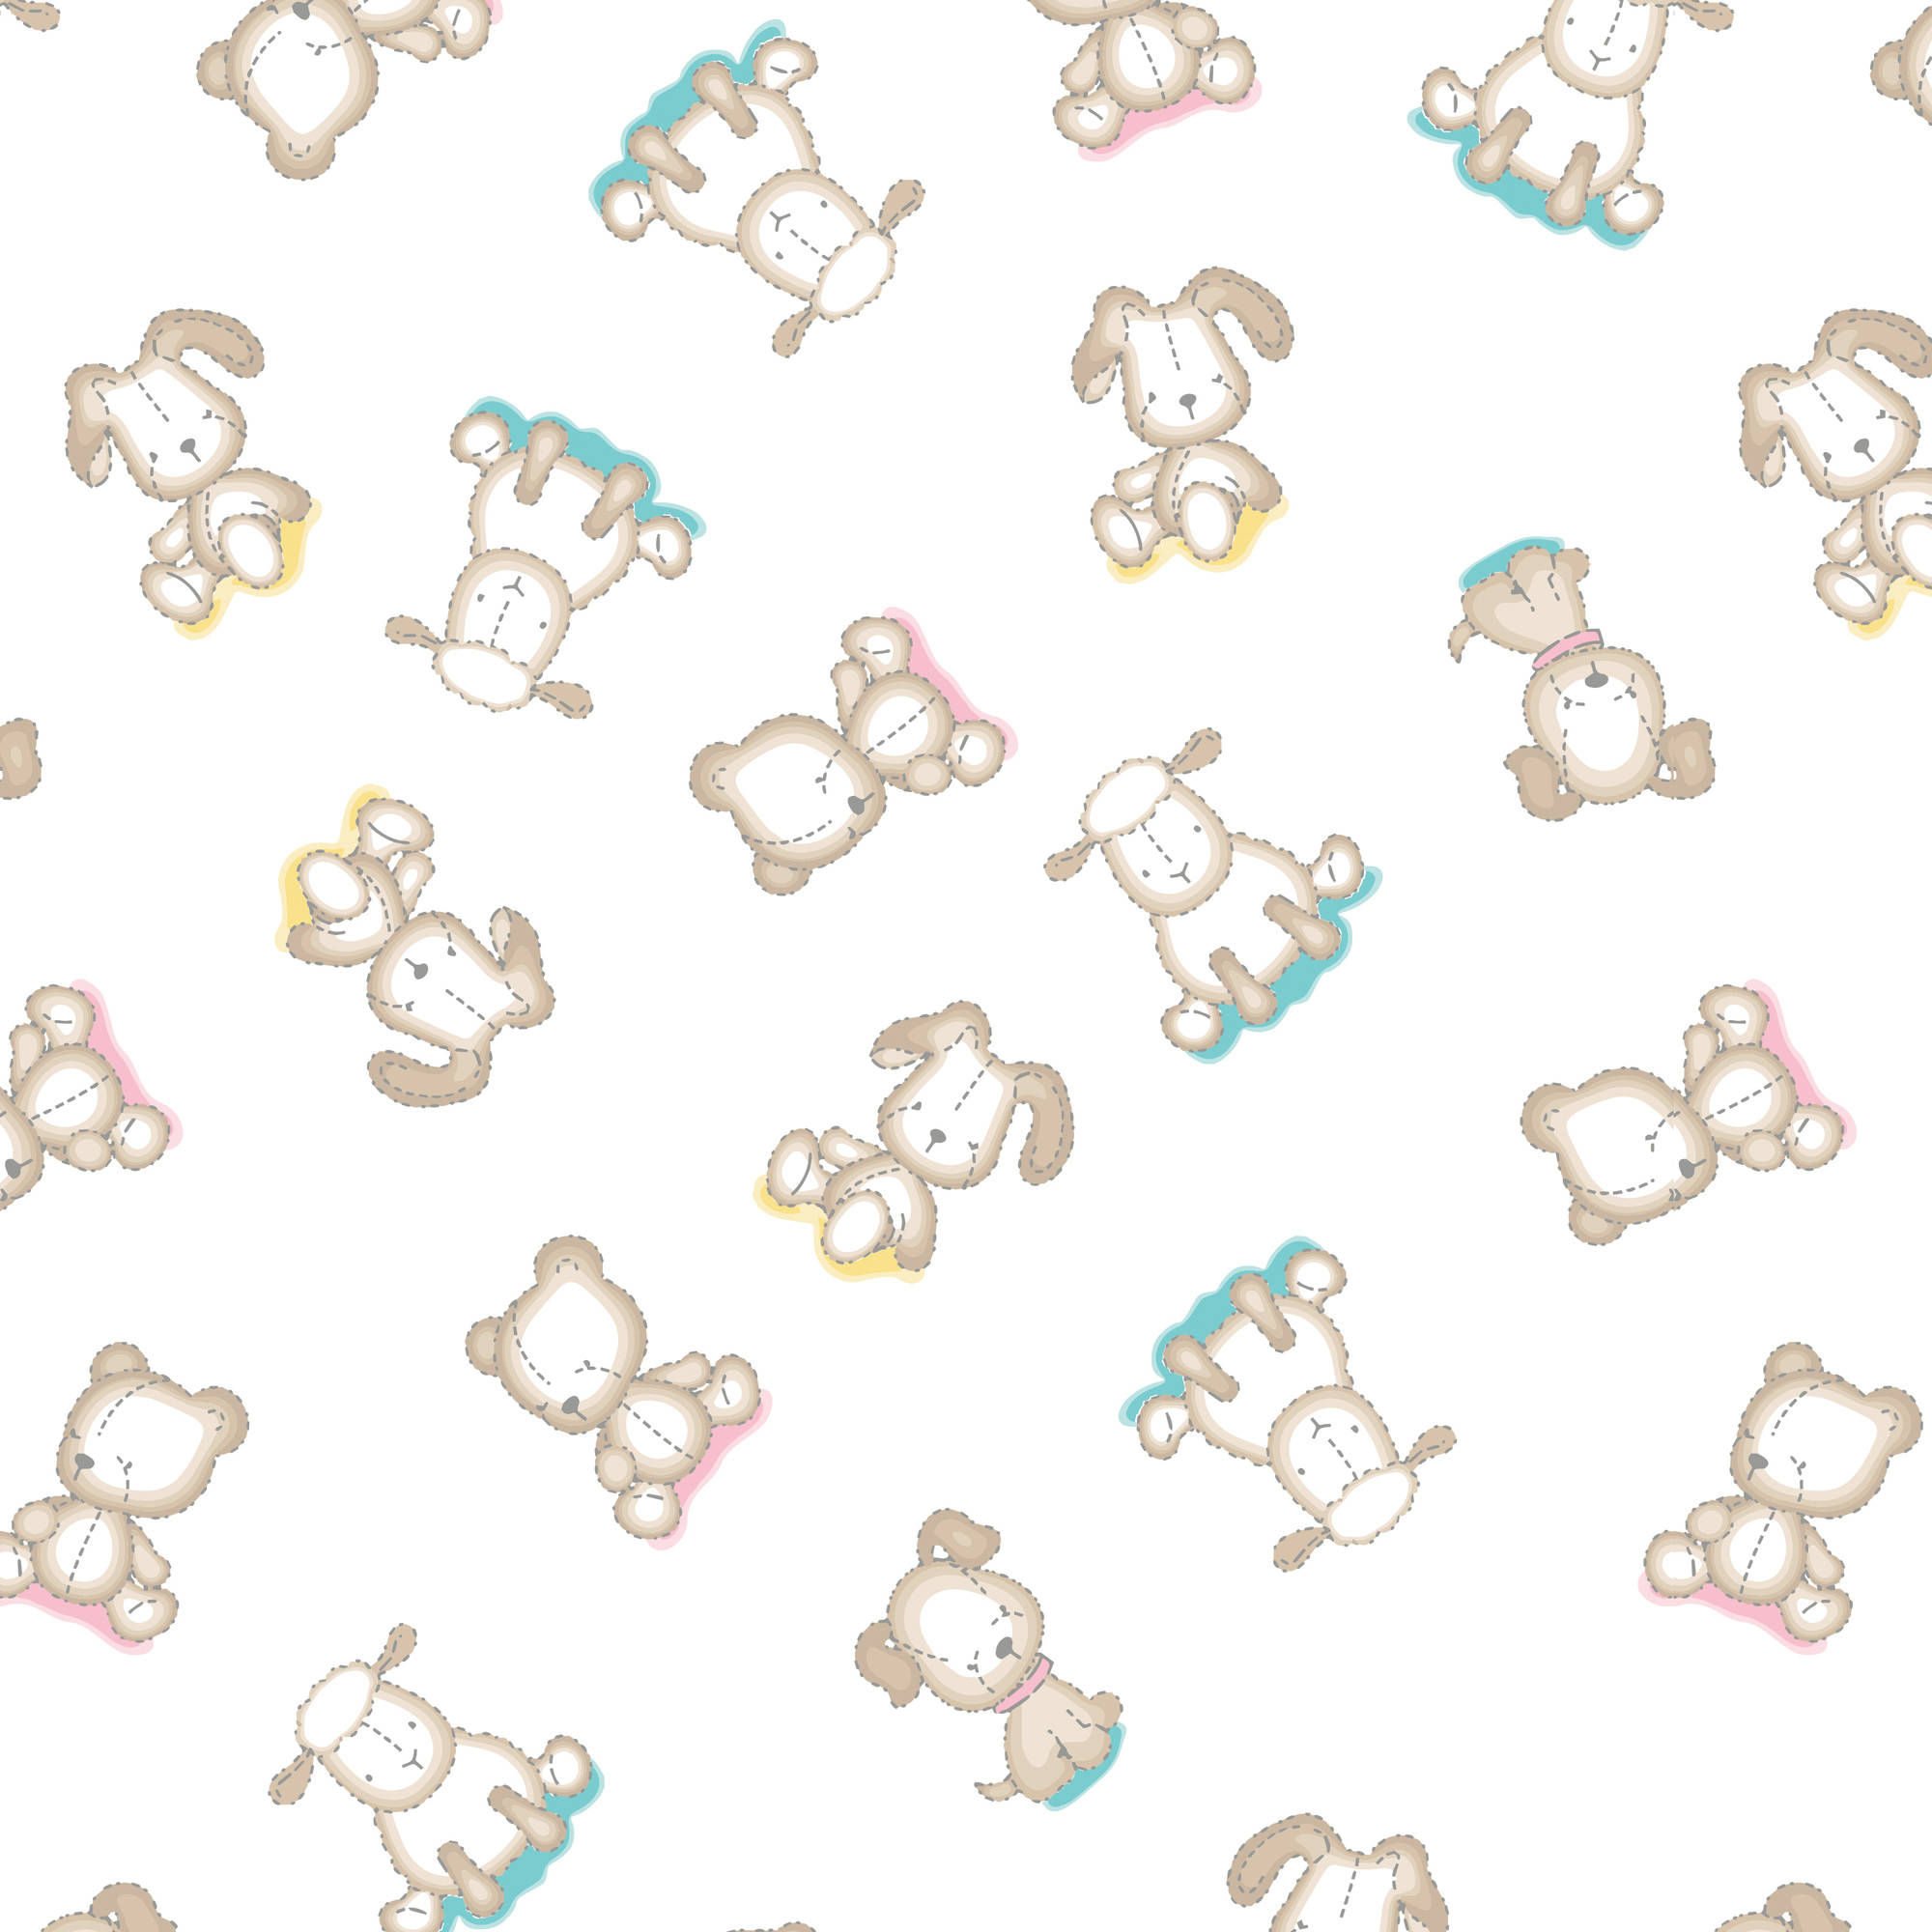 Flannel Made from Bamboo by Emma and Mila from the Baby Mine Collection - Stuffed Animals